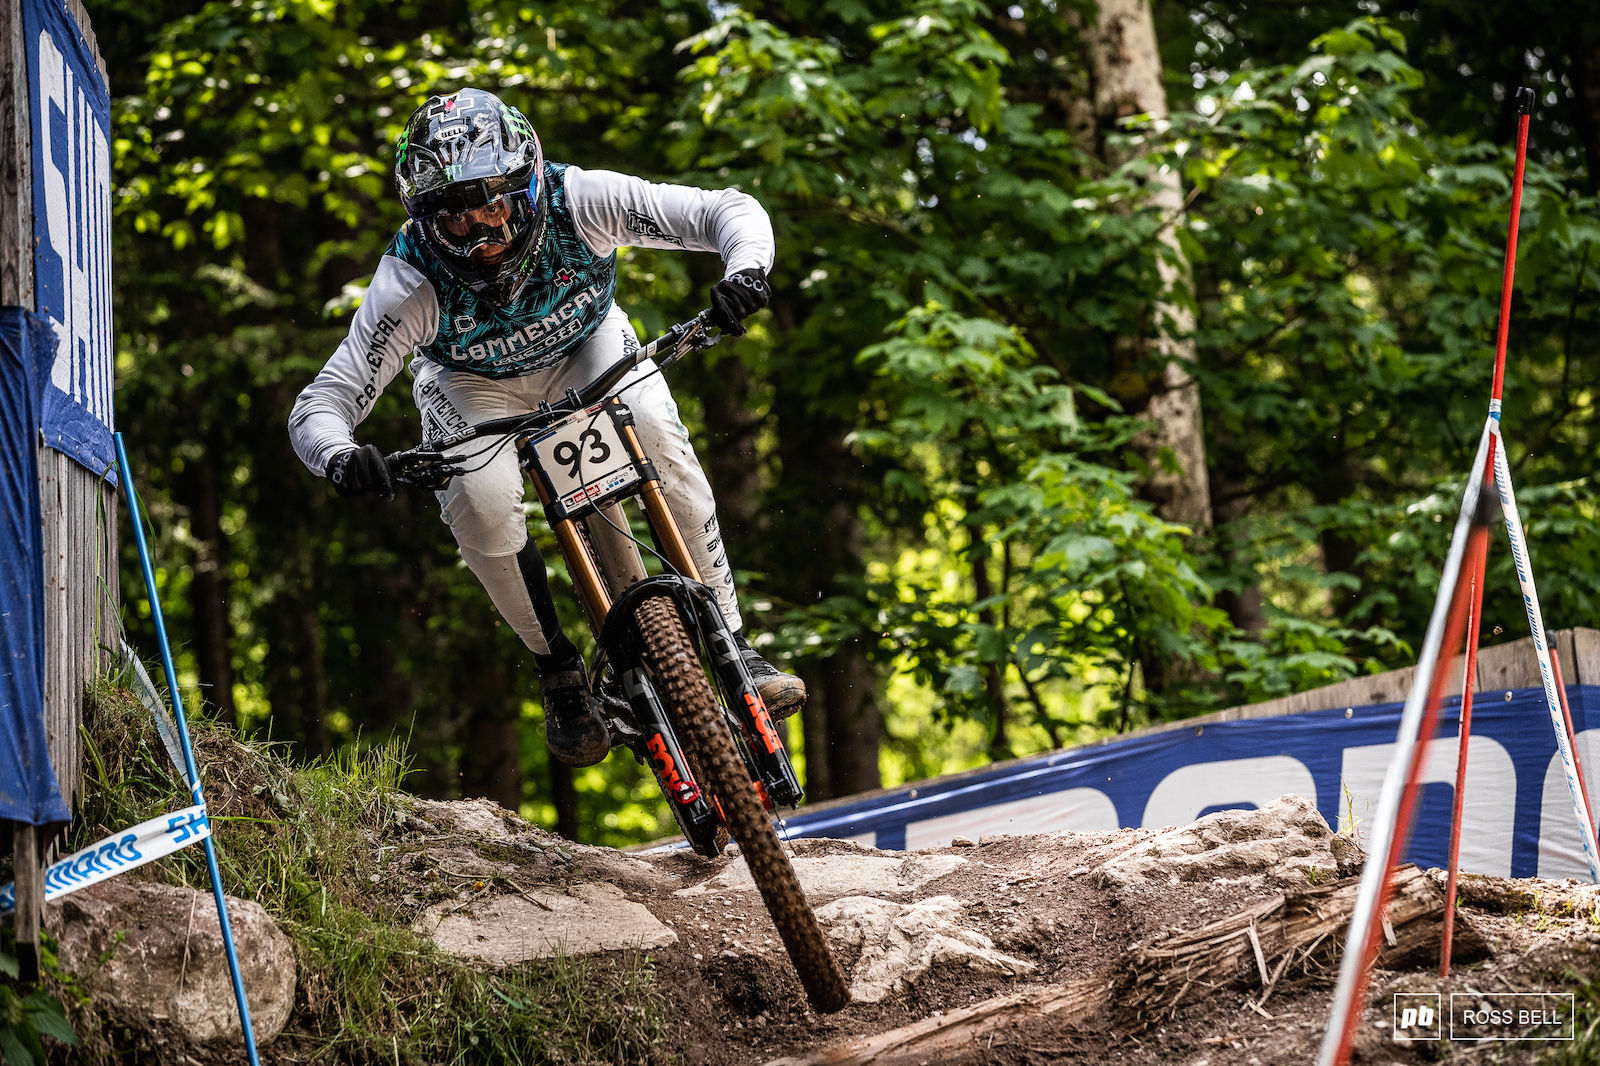 It was great to see Amaury Pierron back between the World Cup tape. He didn t need long to get up to speed and took third place today.